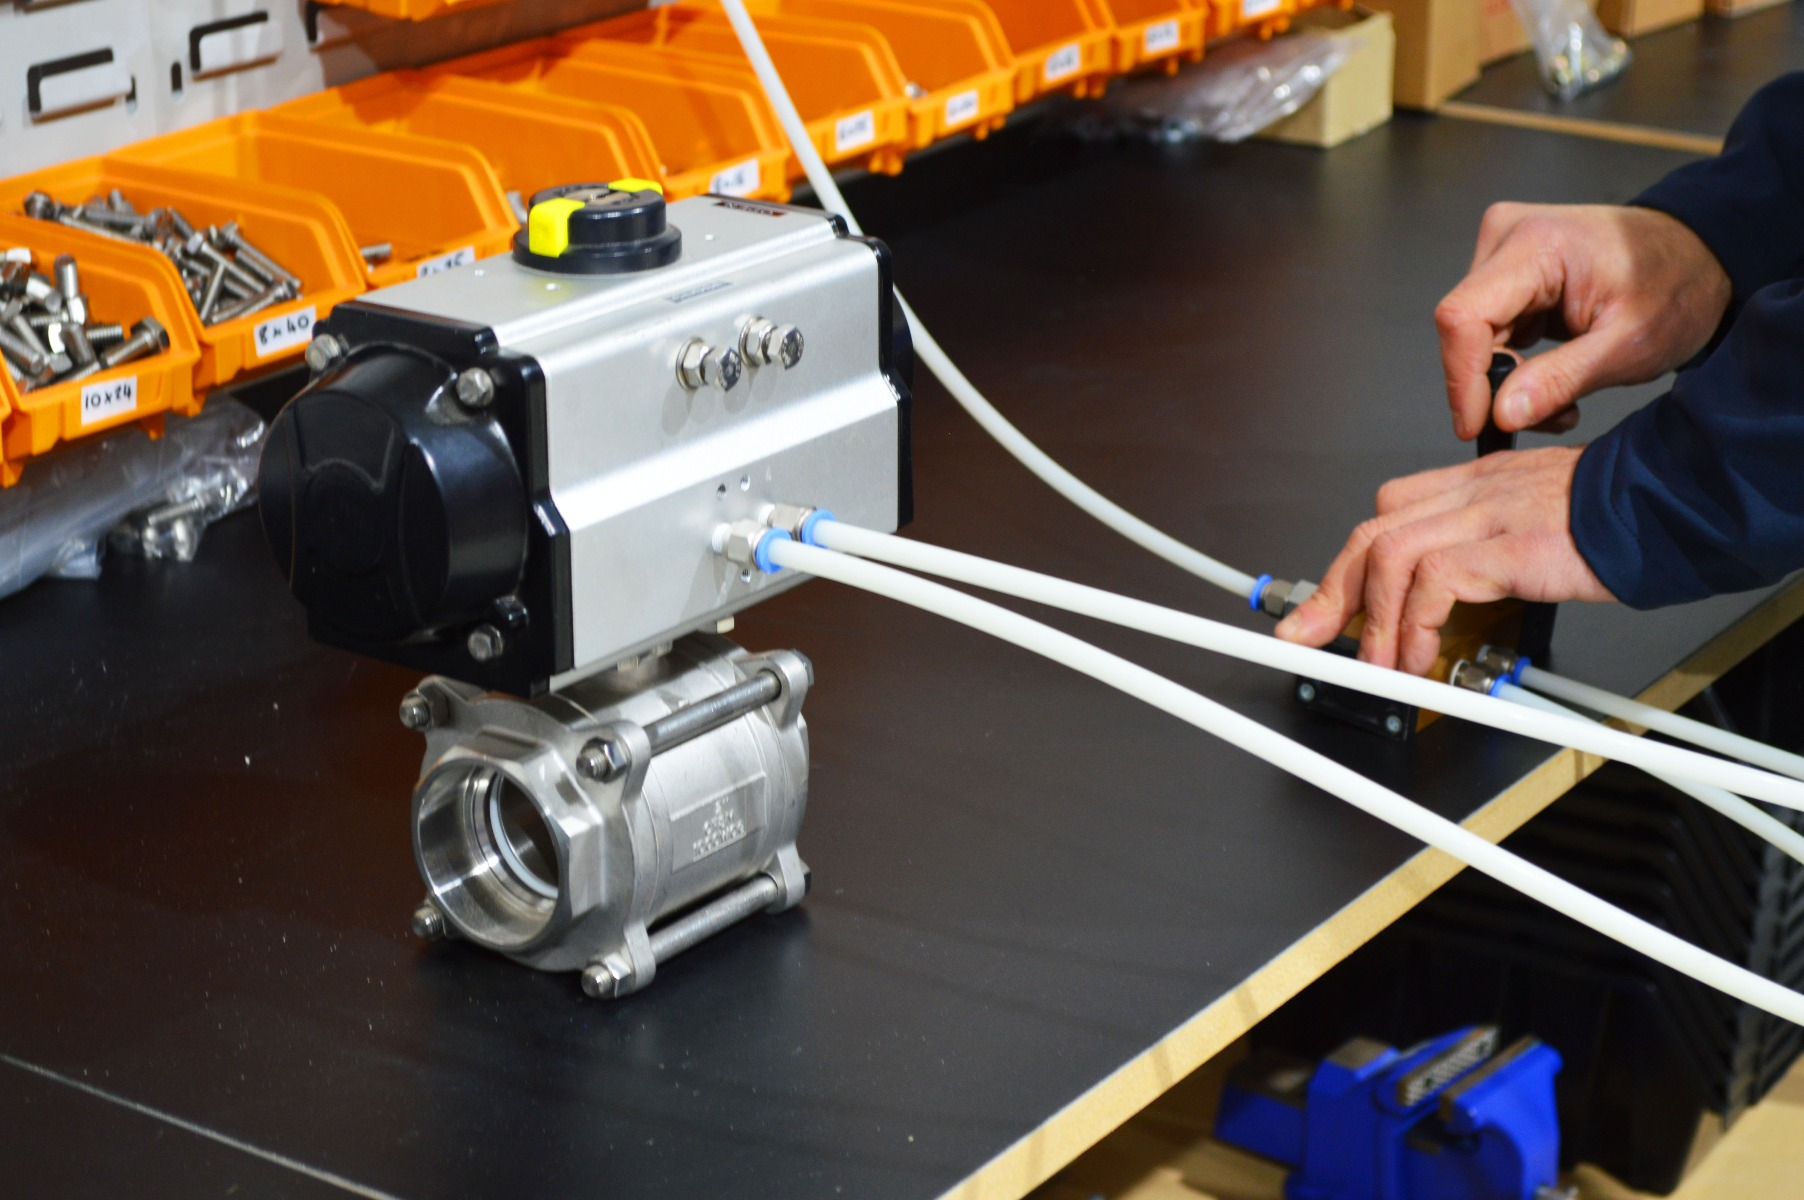 Actuation testing